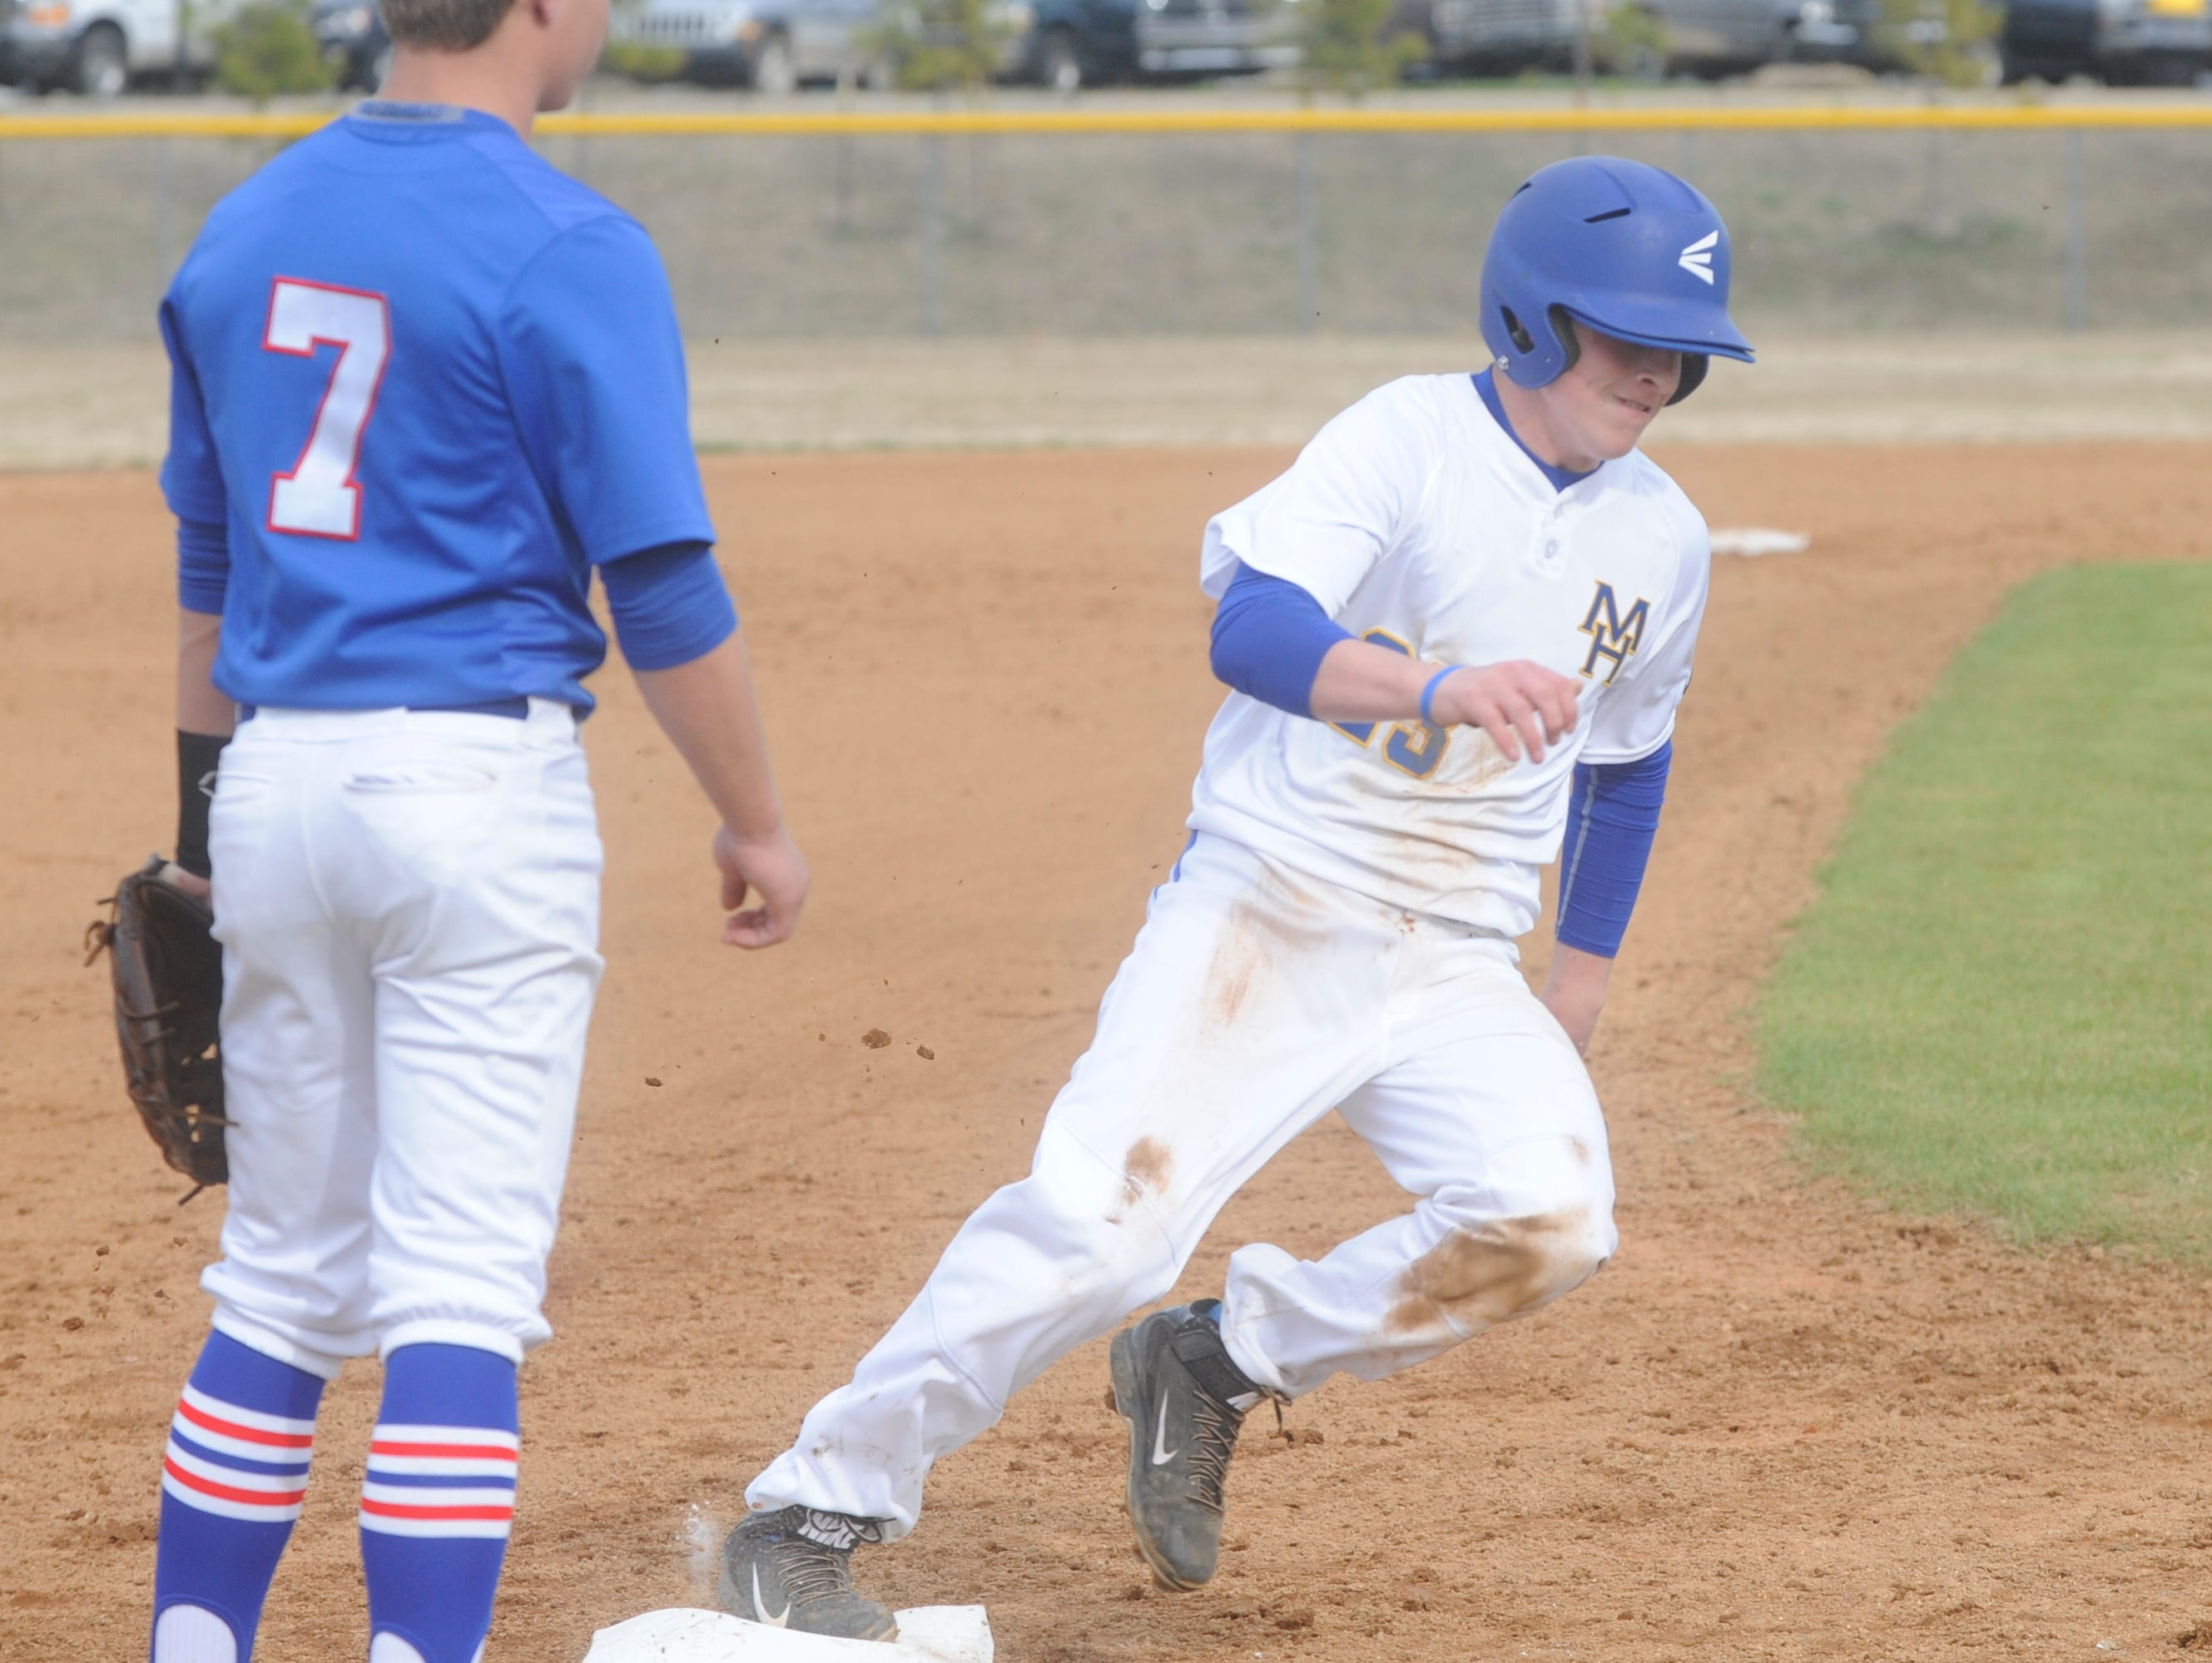 Mountain Home's Marshall Roberson rounds third base on his way to score against West Memphis in a recent game at Cooper Park.